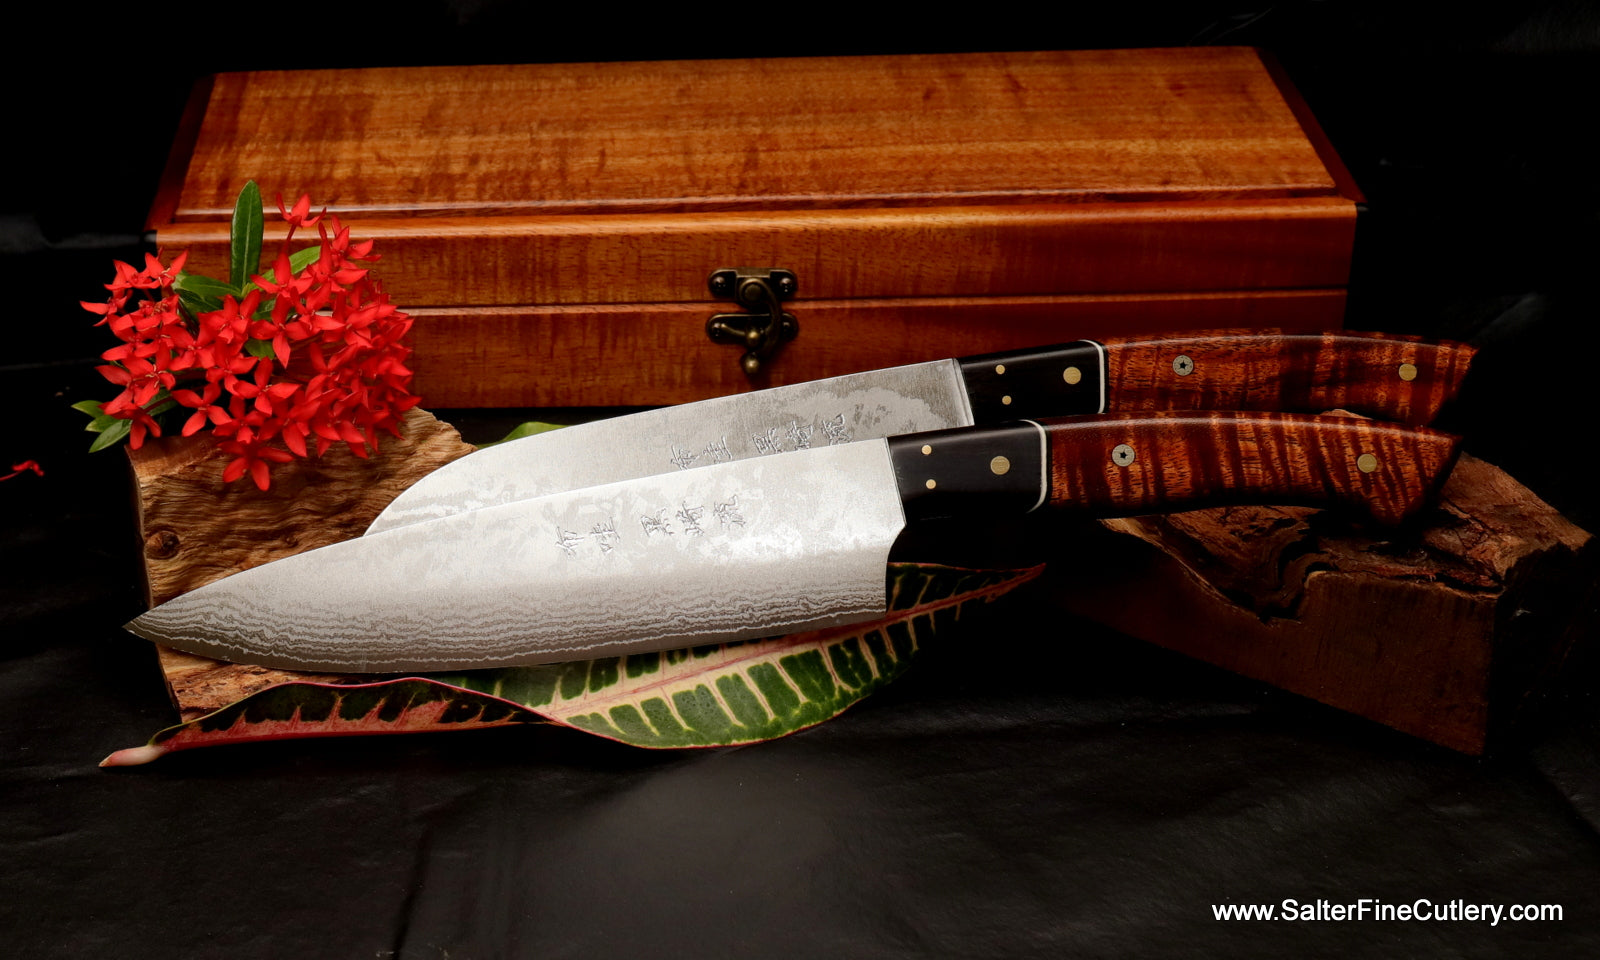 8 inch chef knife and 7 inch santoku with keepsake box by Salter Fine Cutlery